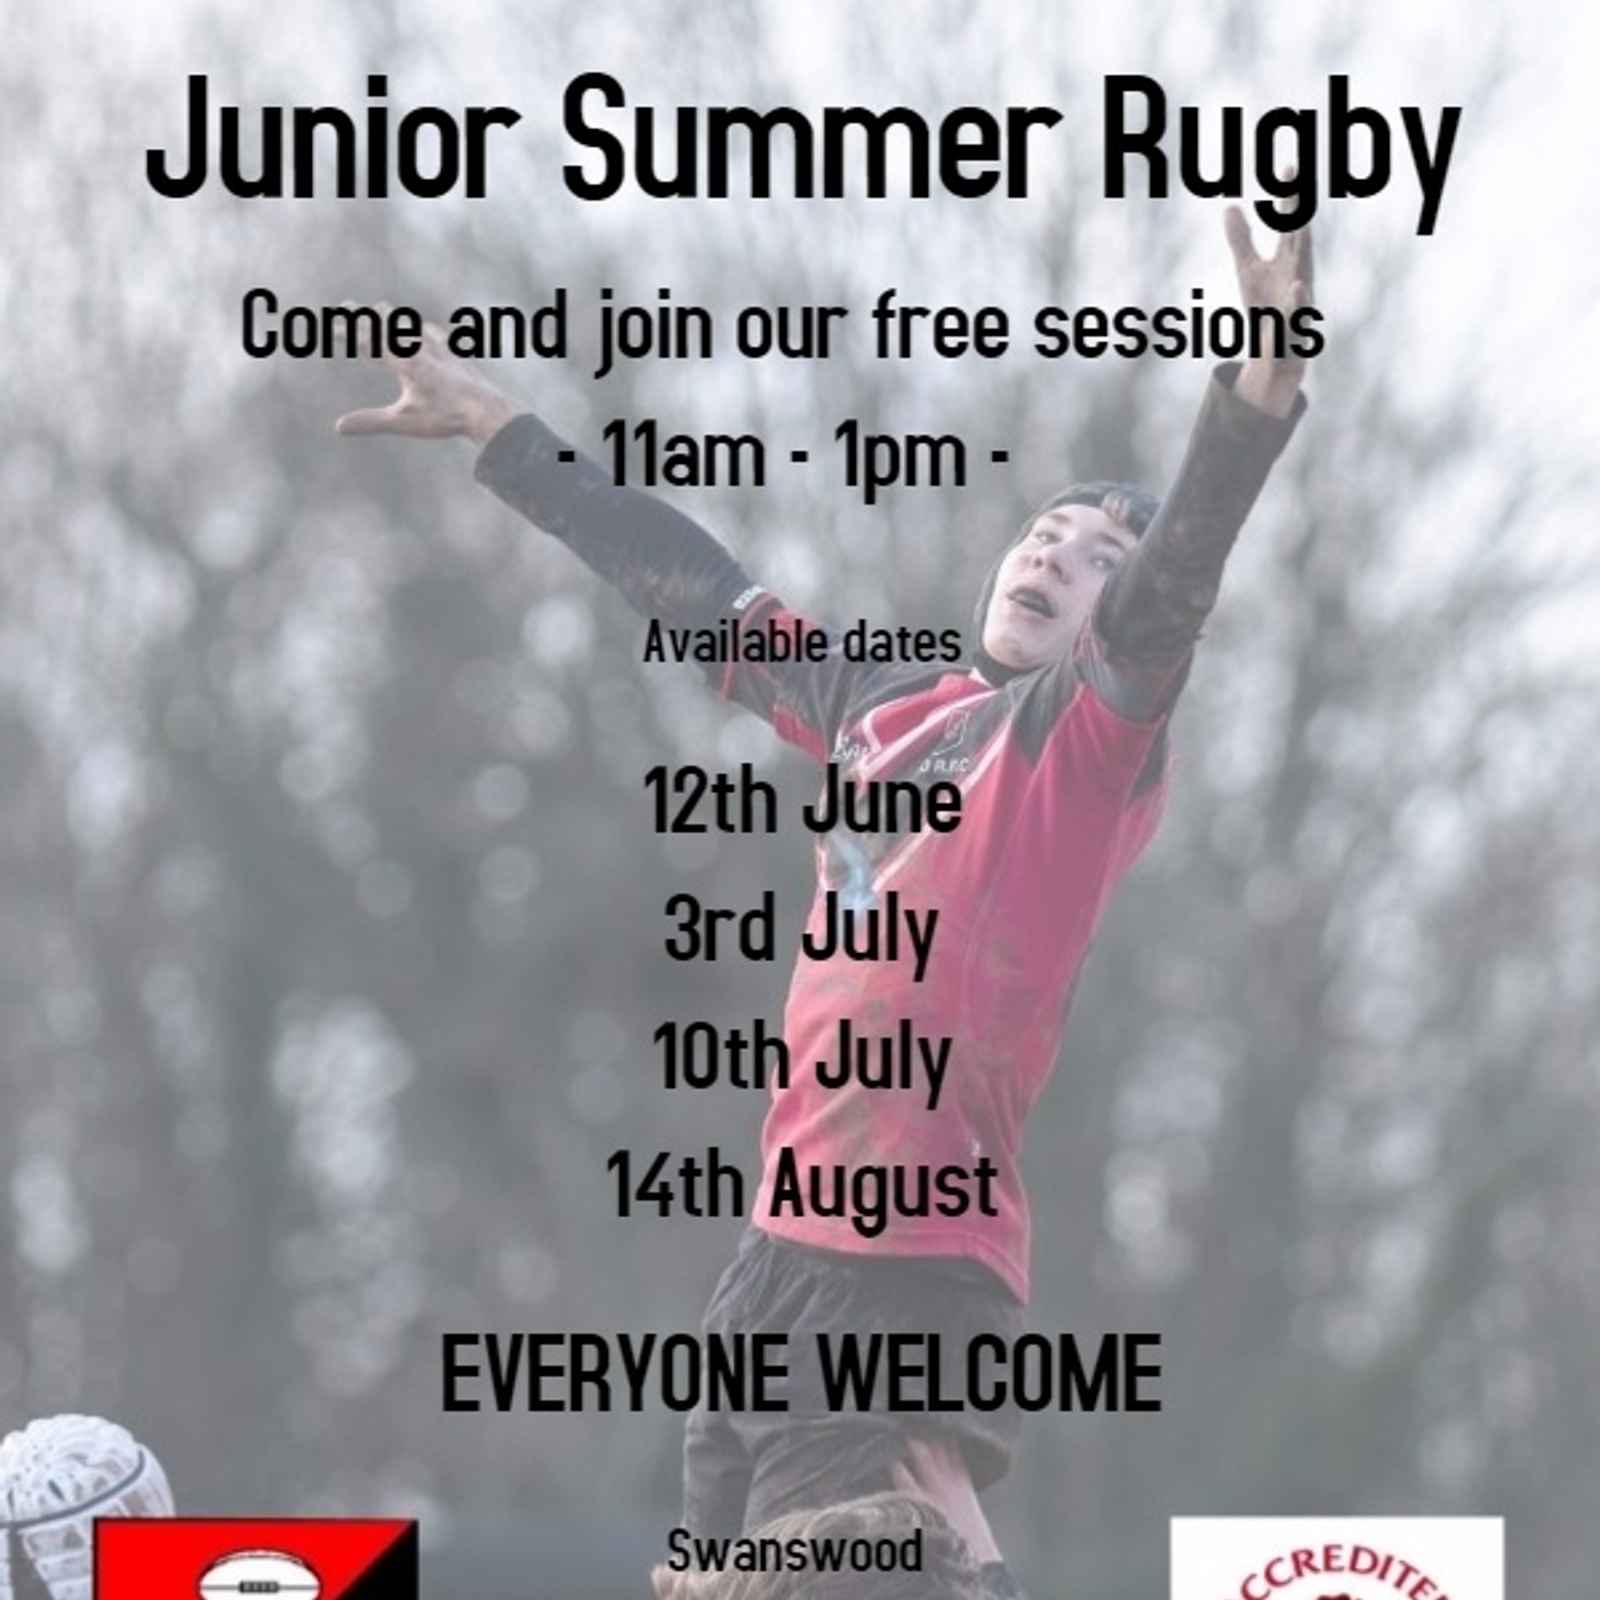 Junior summer rugby